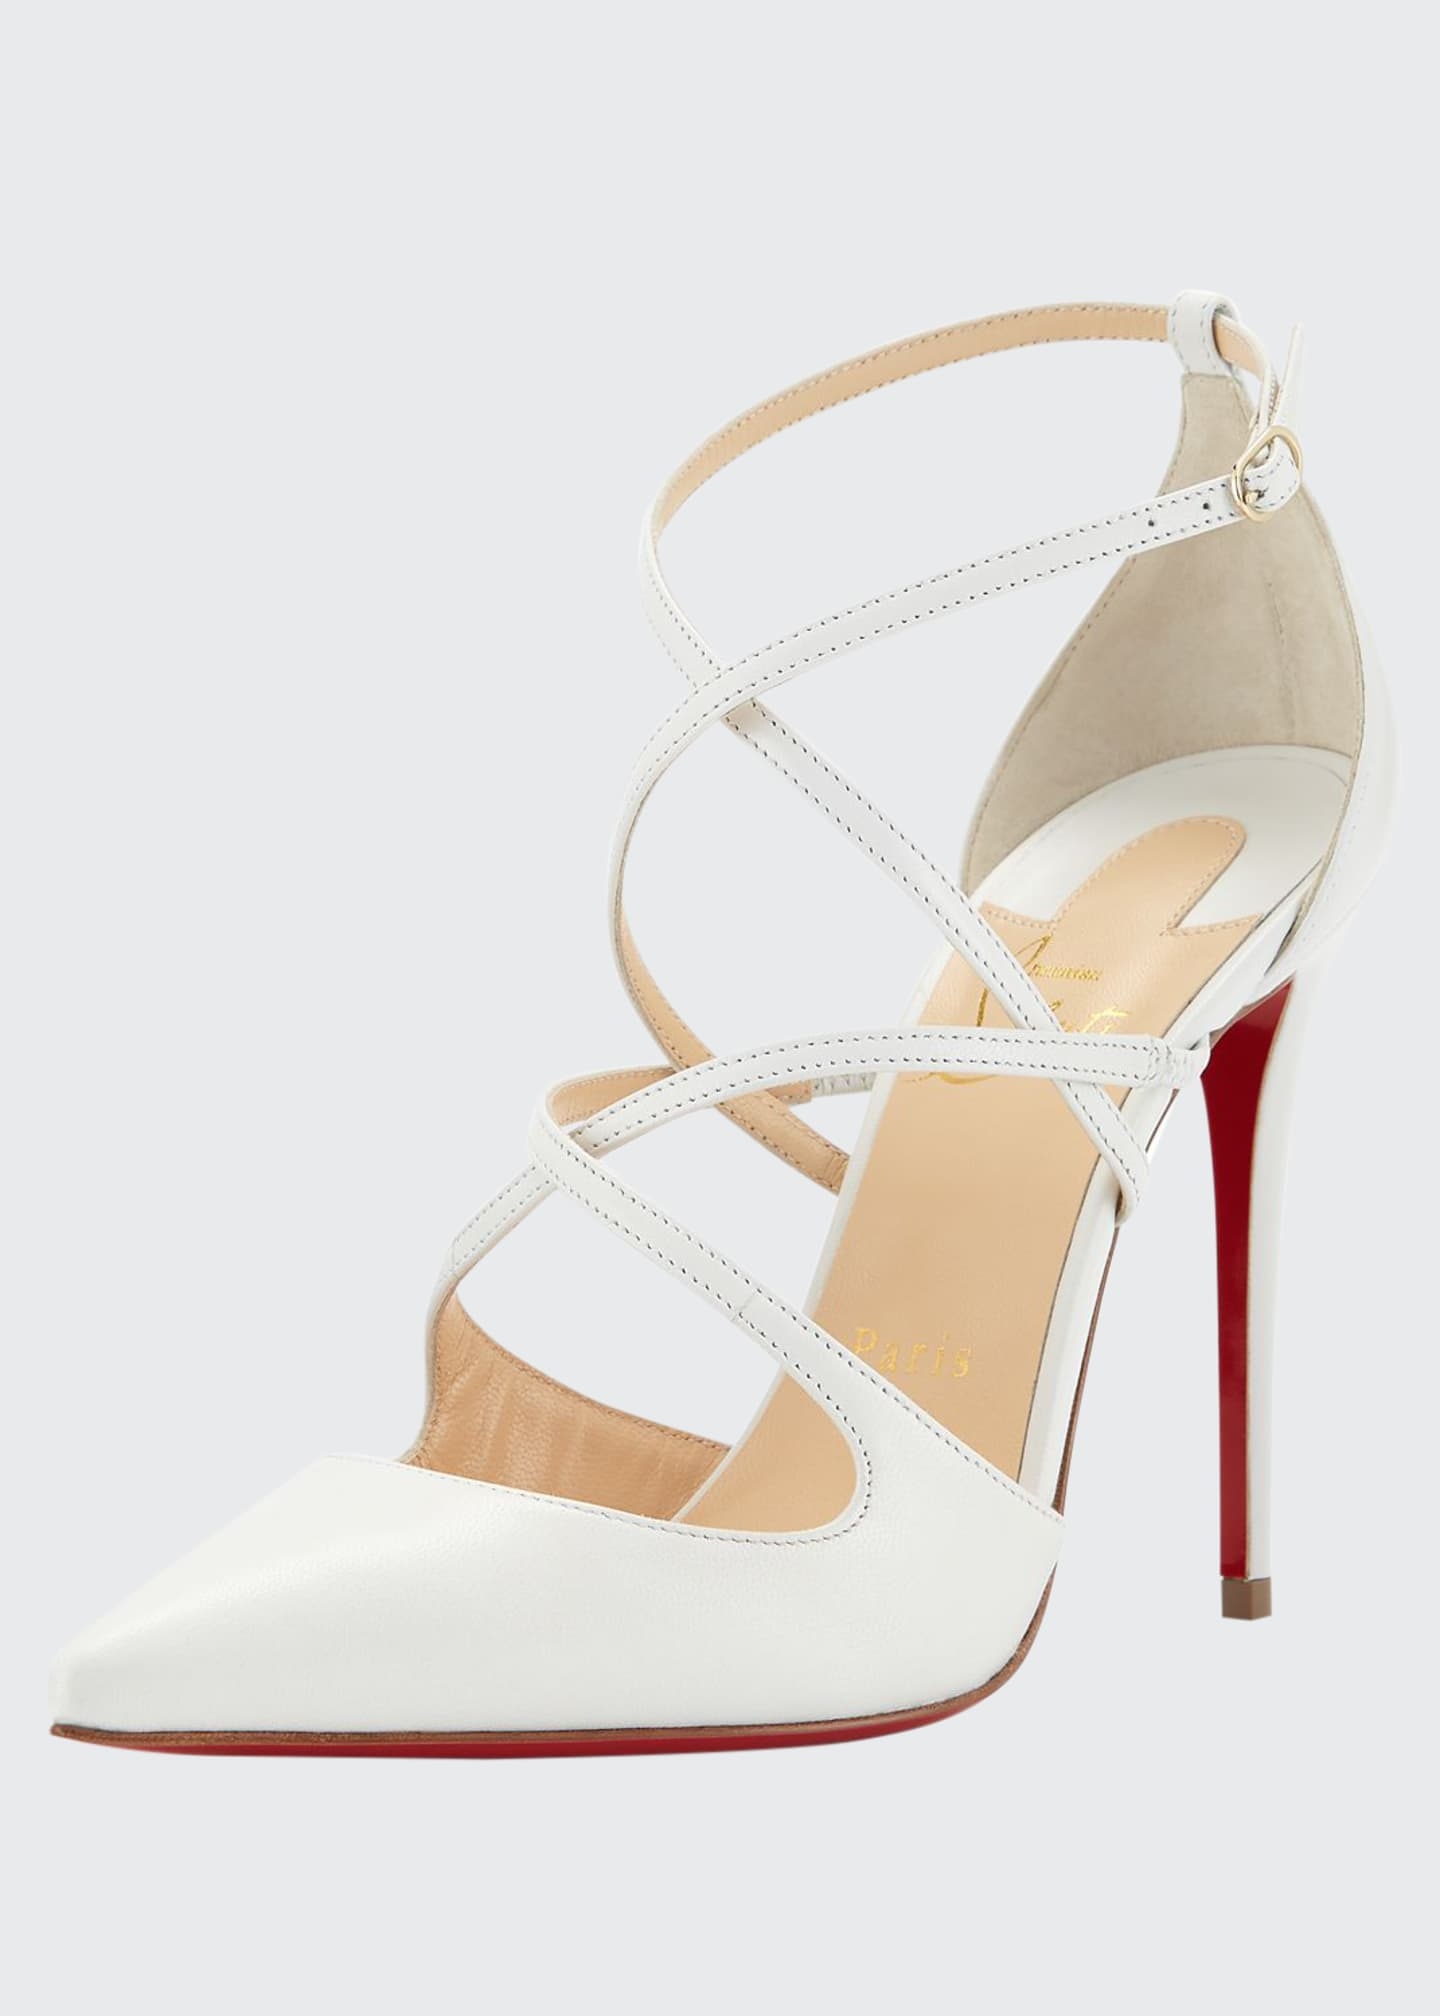 Christian Louboutin Cross Fliketa Strappy Red Sole Pump